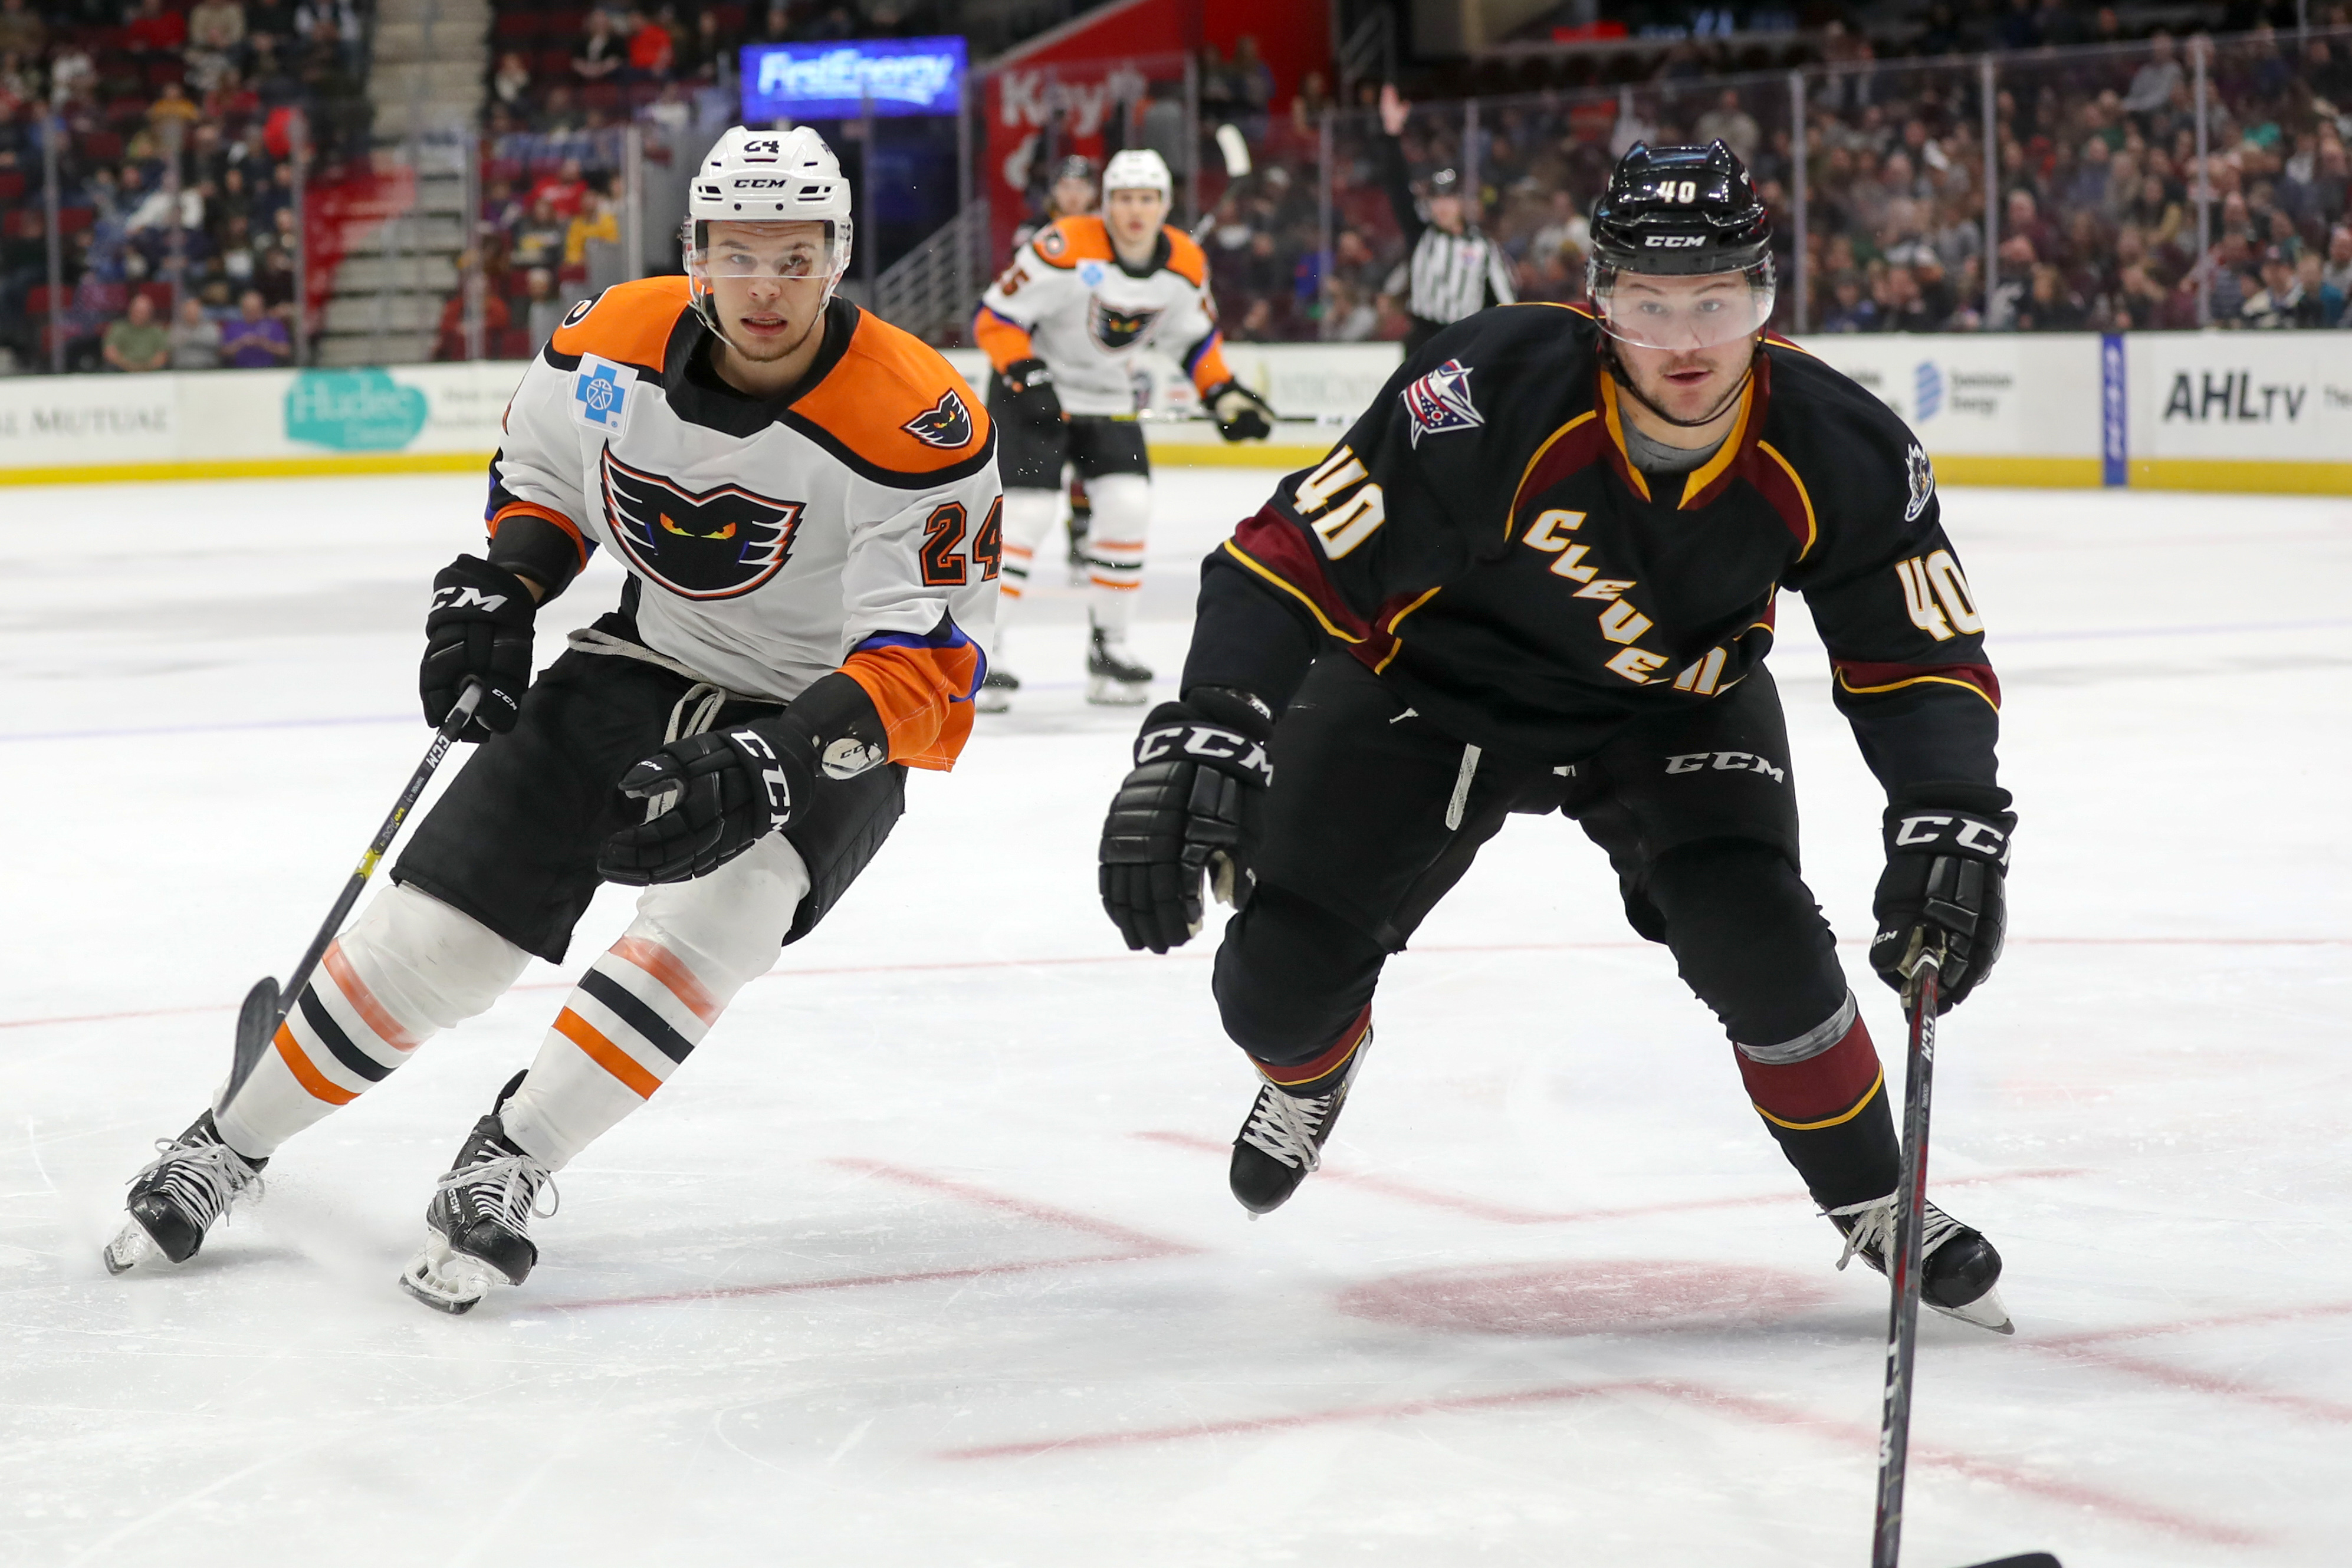 AHL: MAR 29 Lehigh Valley Phantoms at Cleveland Monsters